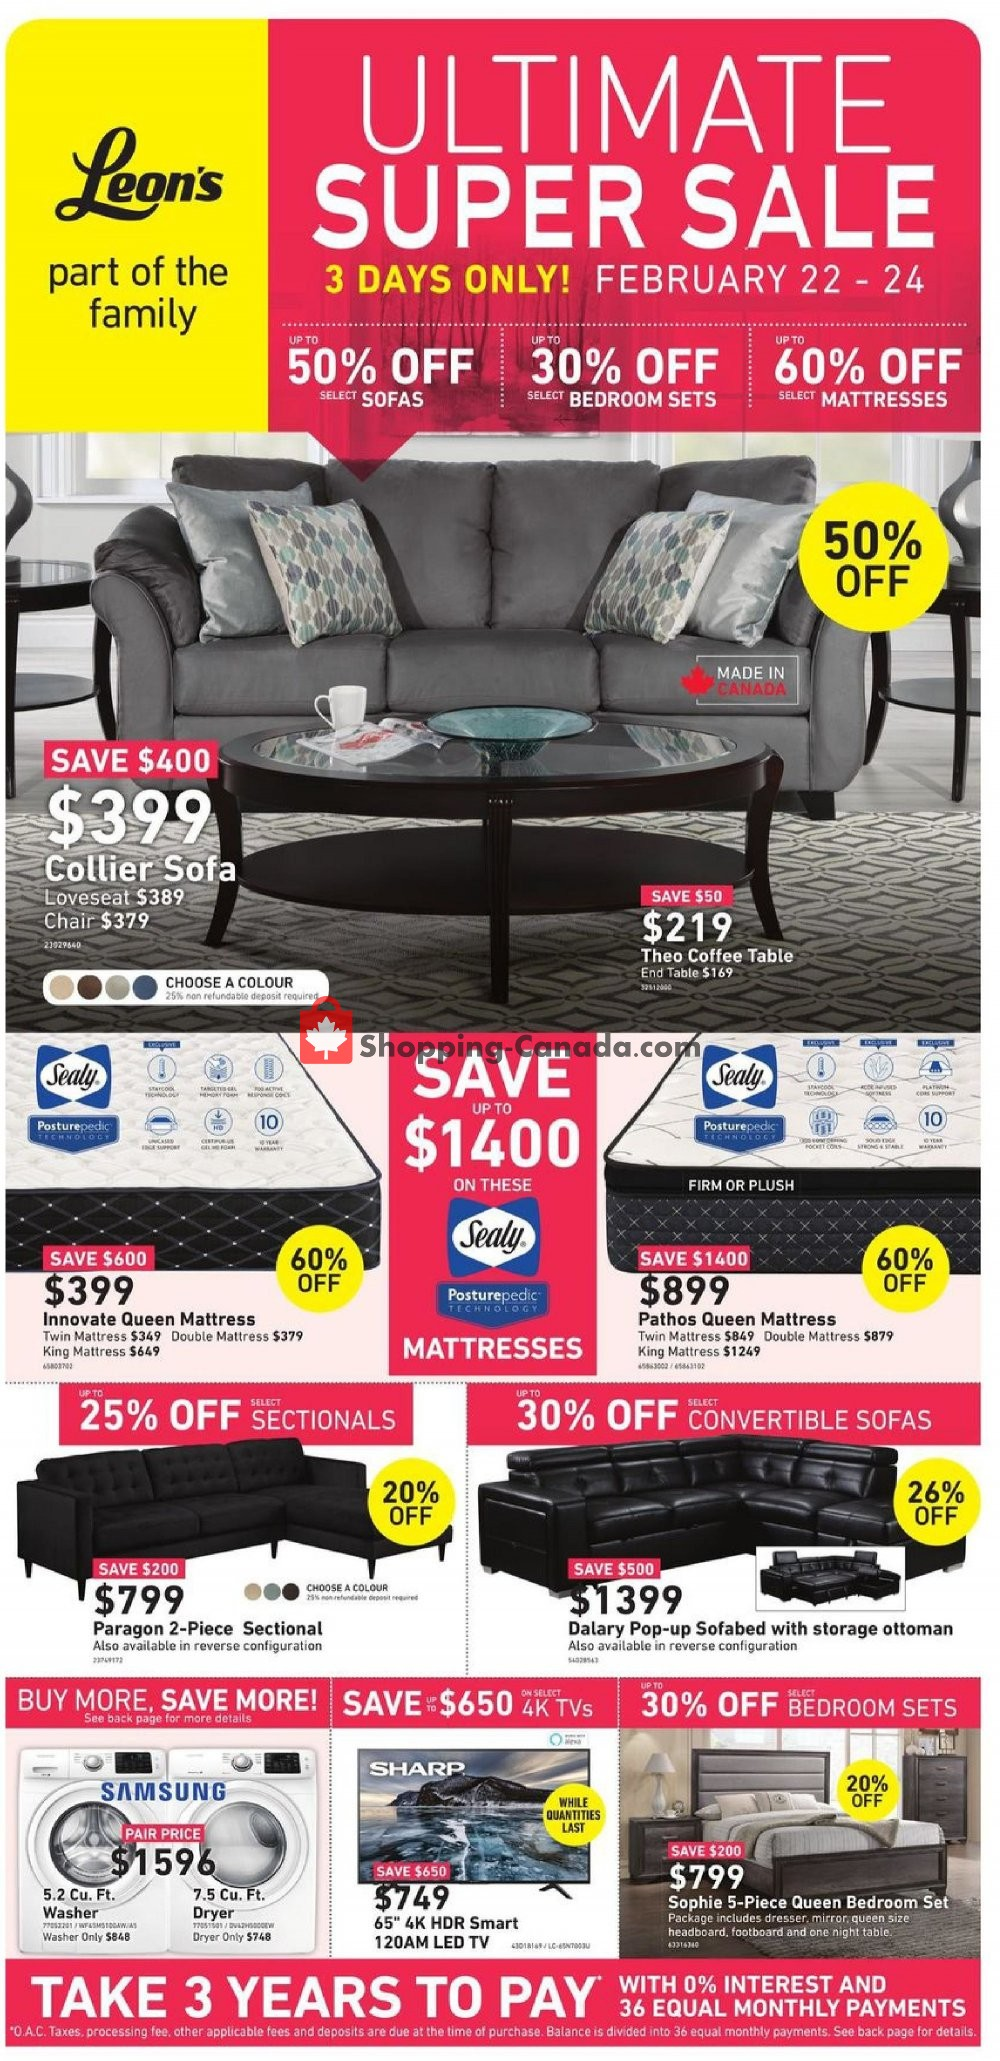 Flyer Leon's Furniture Canada - from Friday February 22, 2019 to Sunday February 24, 2019